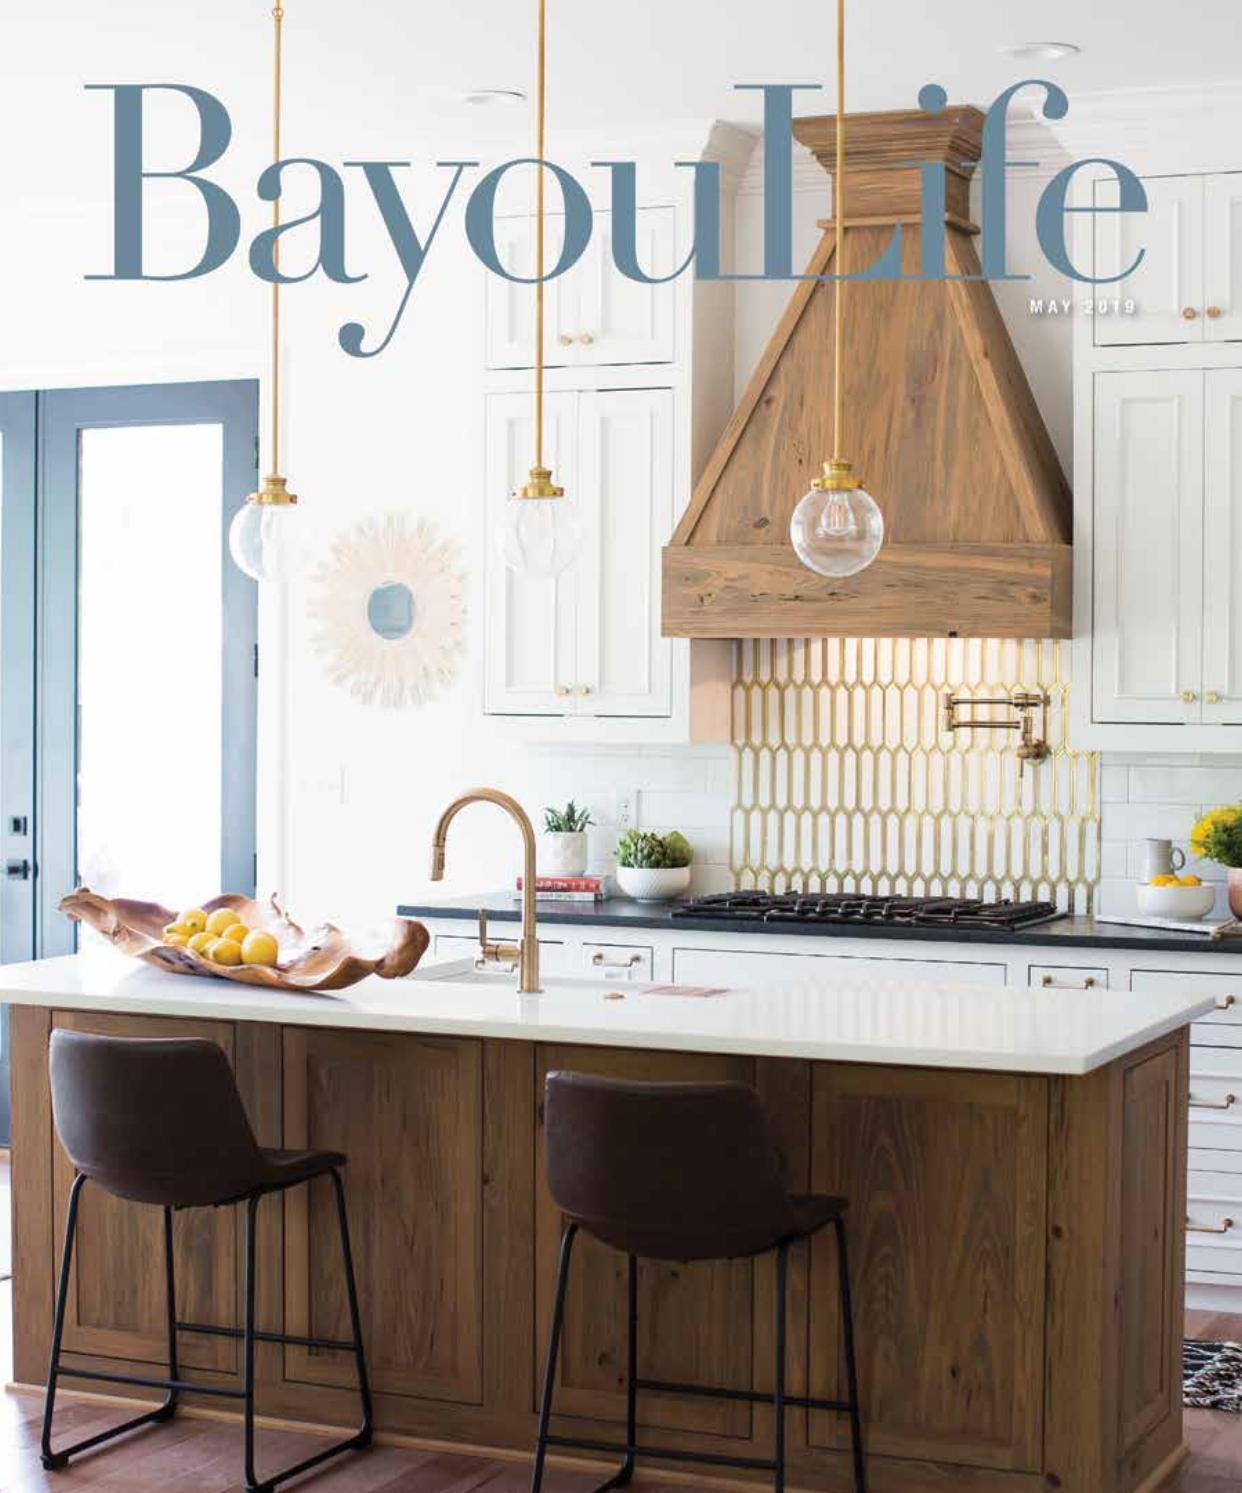 BayouLife Magazine May 2019 by BayouLife Magazine - issuu